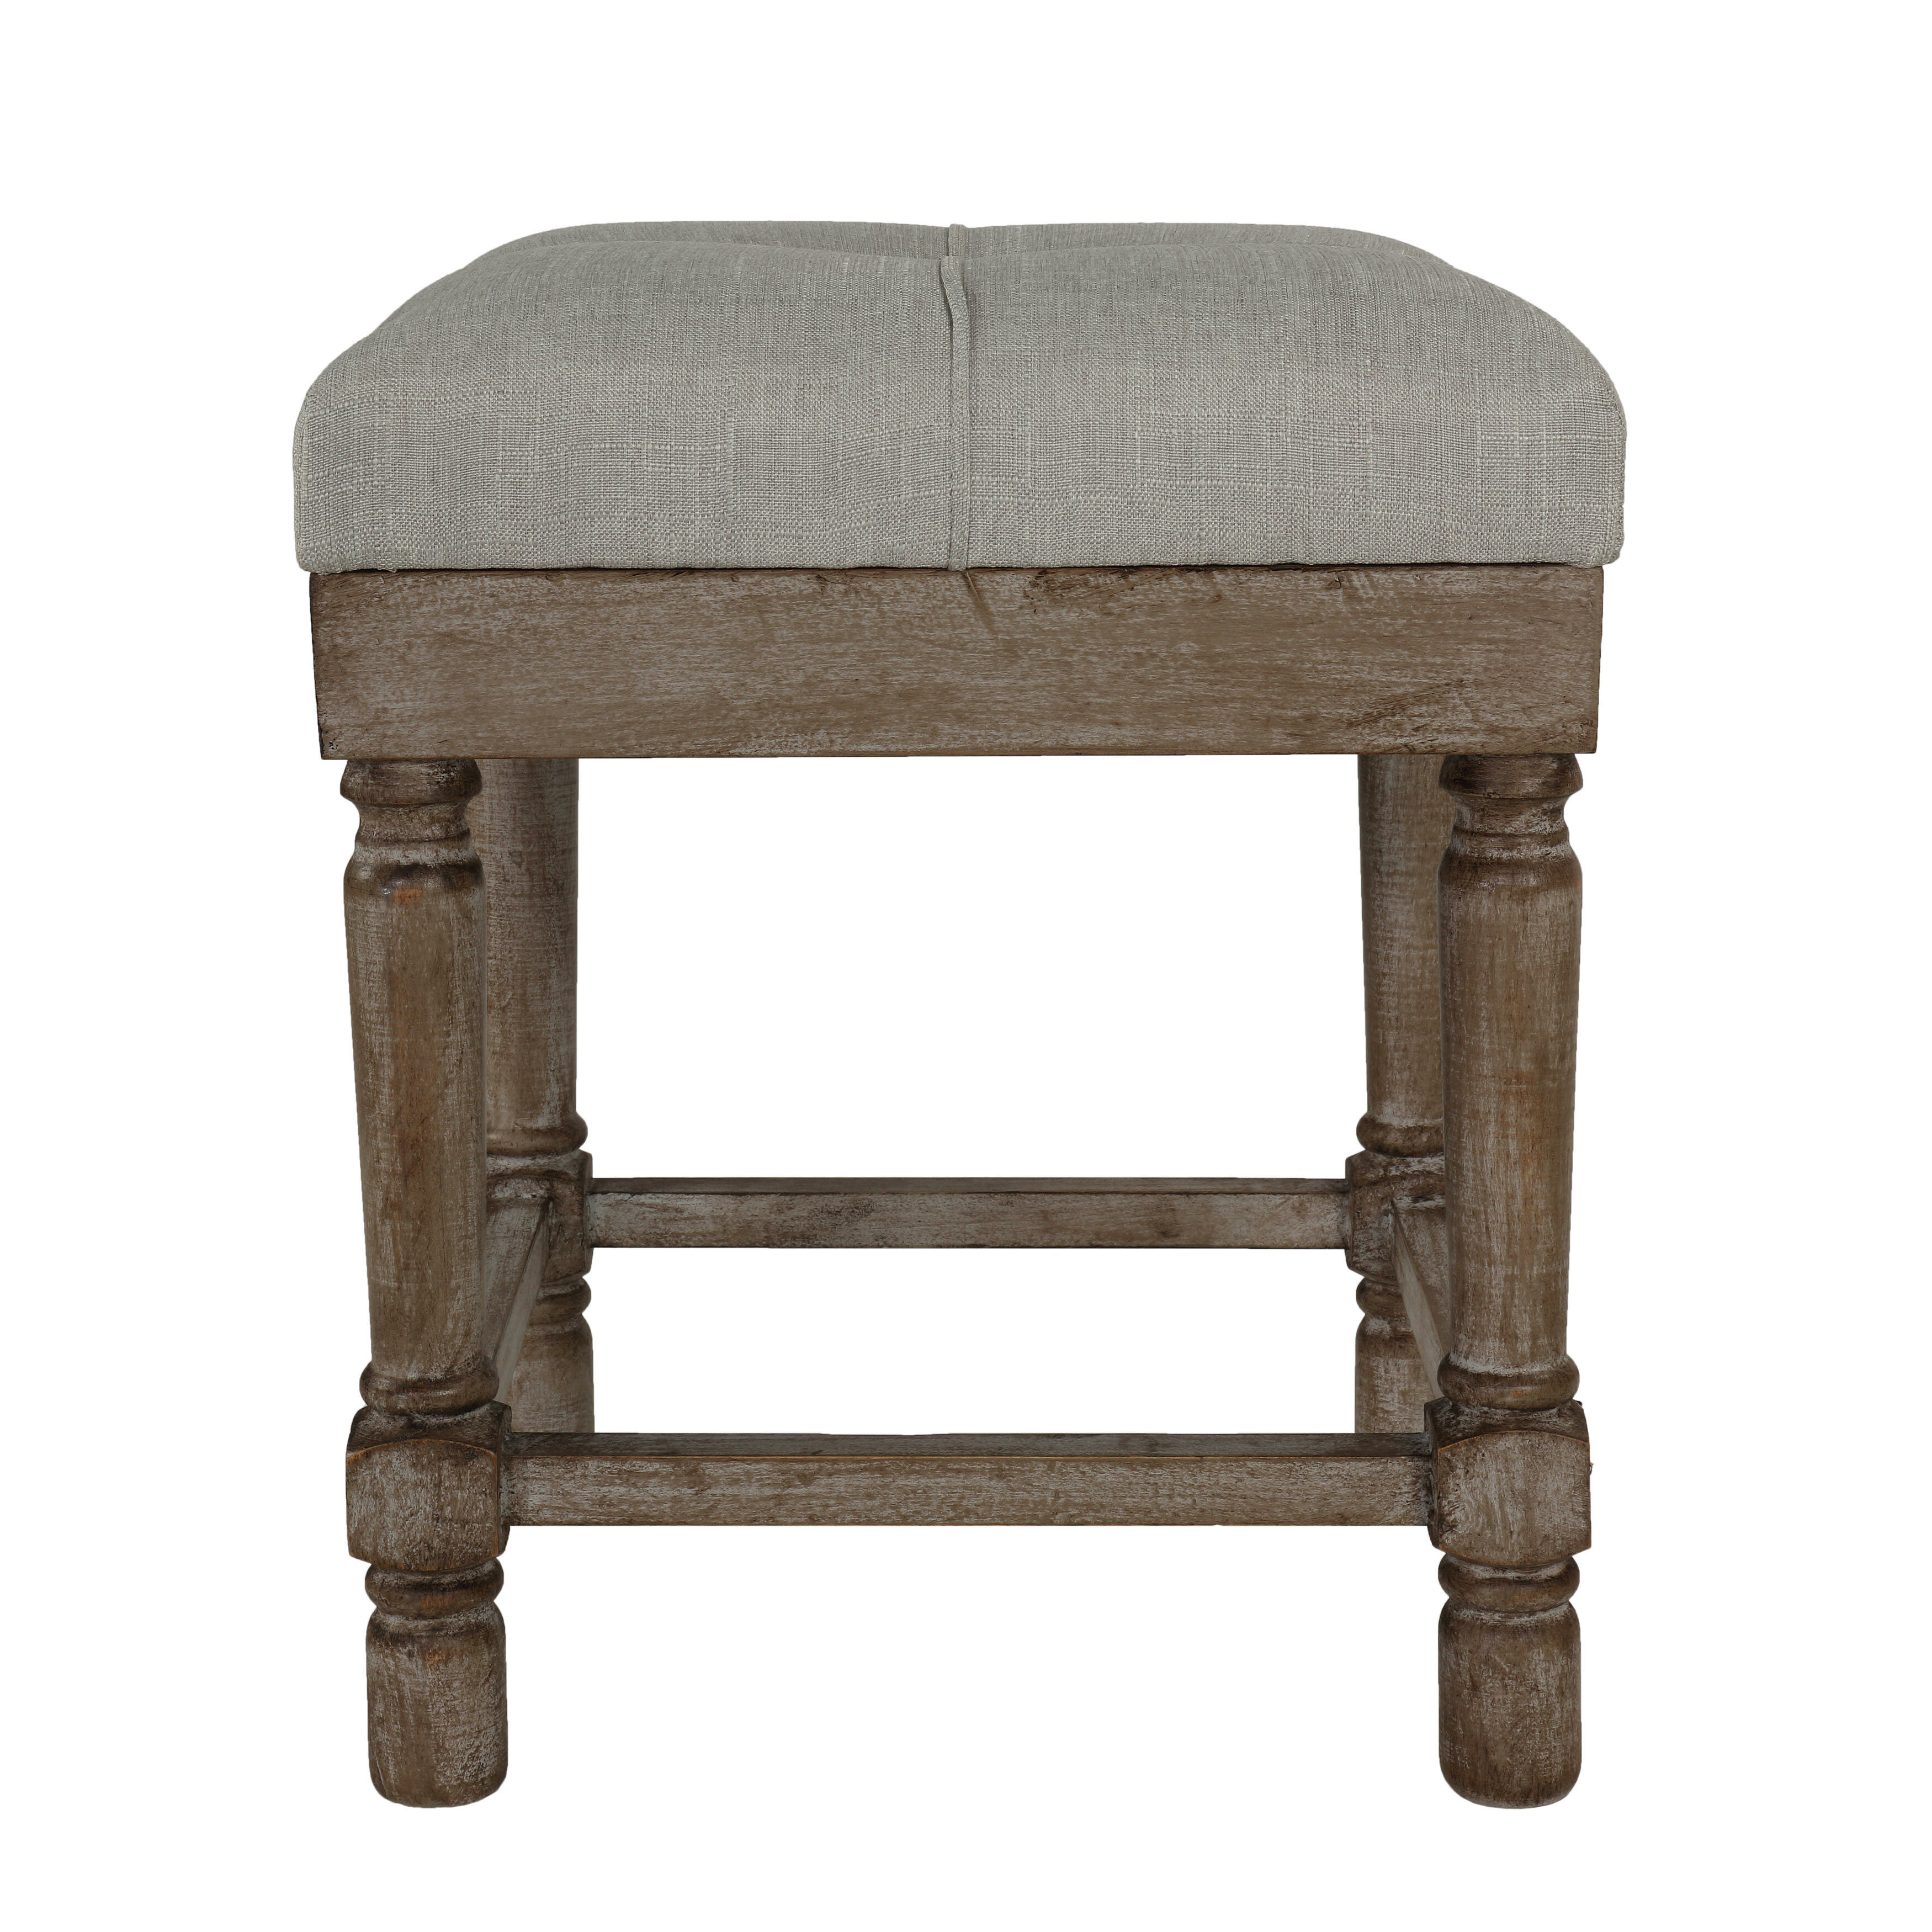 Pleasing Gracie Oaks Frisch Square Tufted Ottoman Wayfair Caraccident5 Cool Chair Designs And Ideas Caraccident5Info